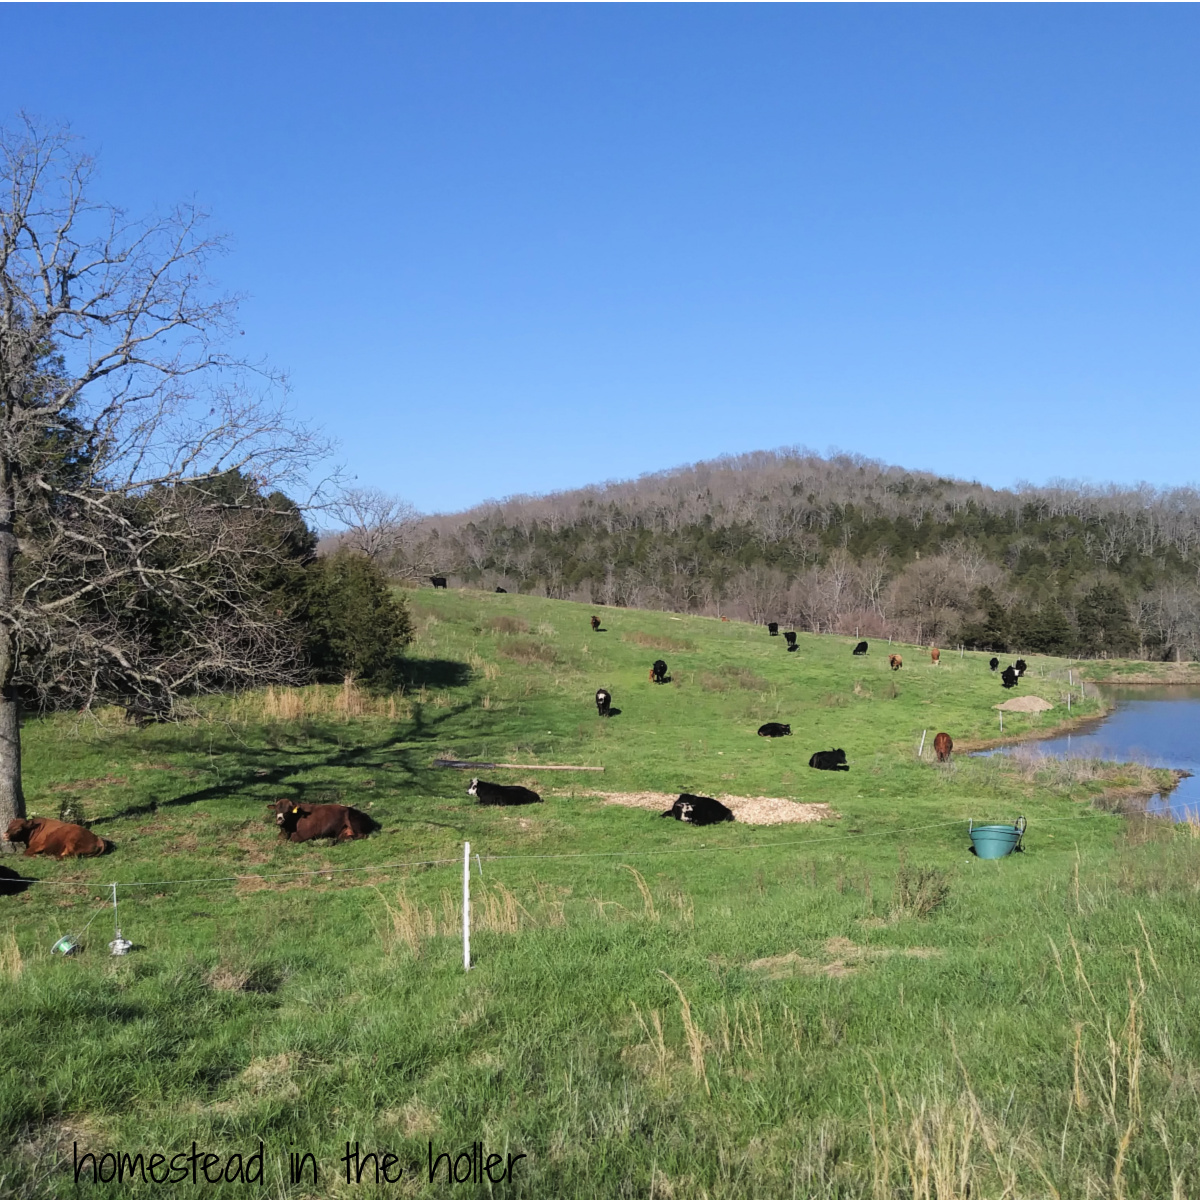 Getting started without permanent fencing - Homestead In The Holler